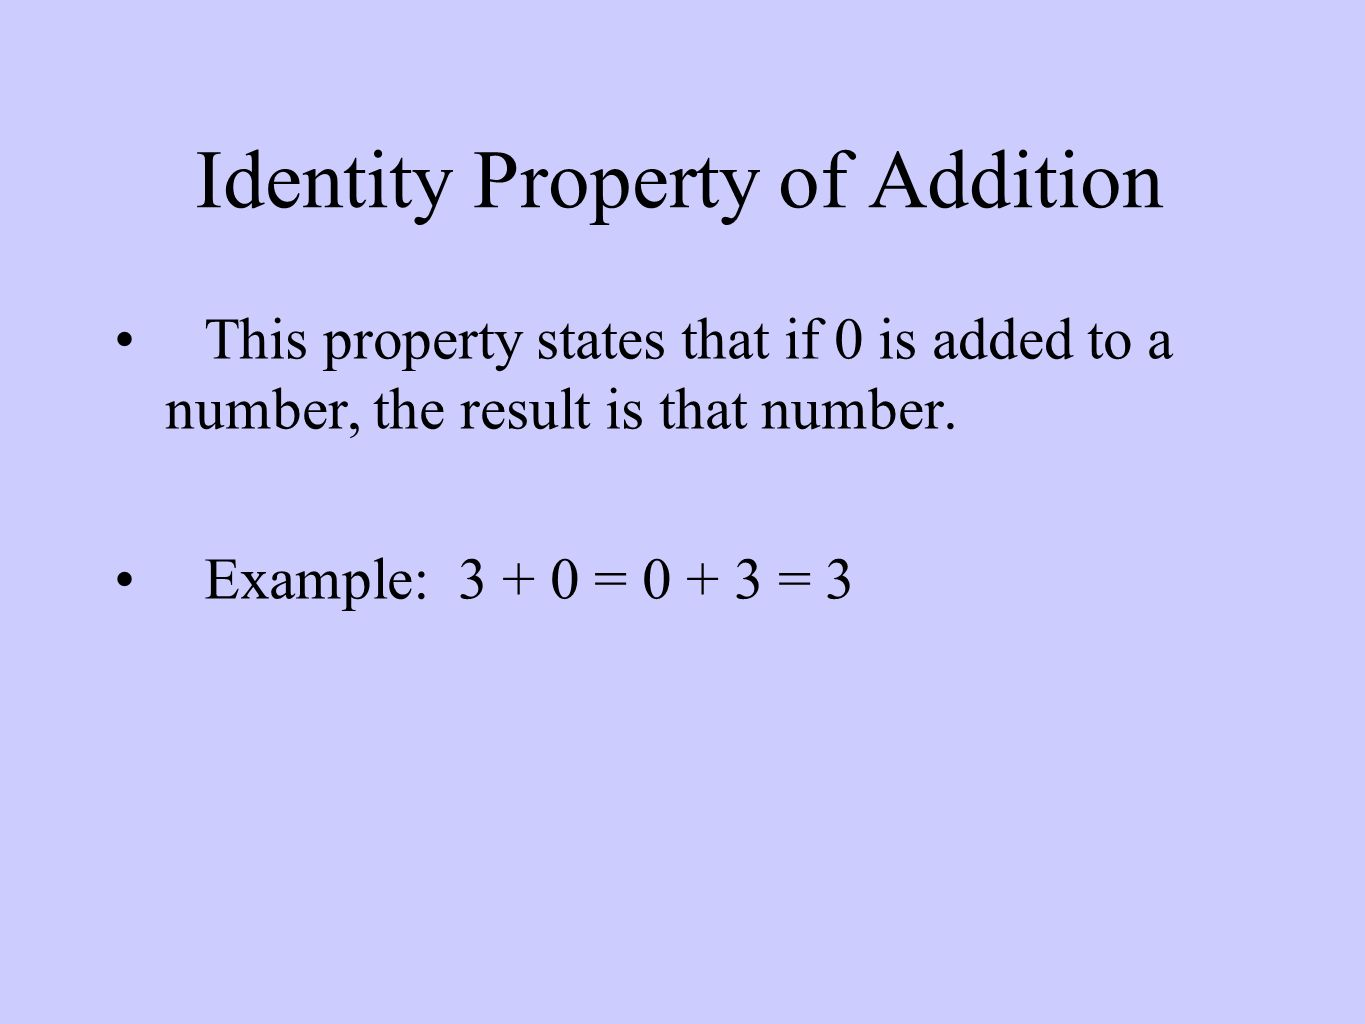 Identity Property of Addition This property states that if 0 is added to a number, the result is that number.